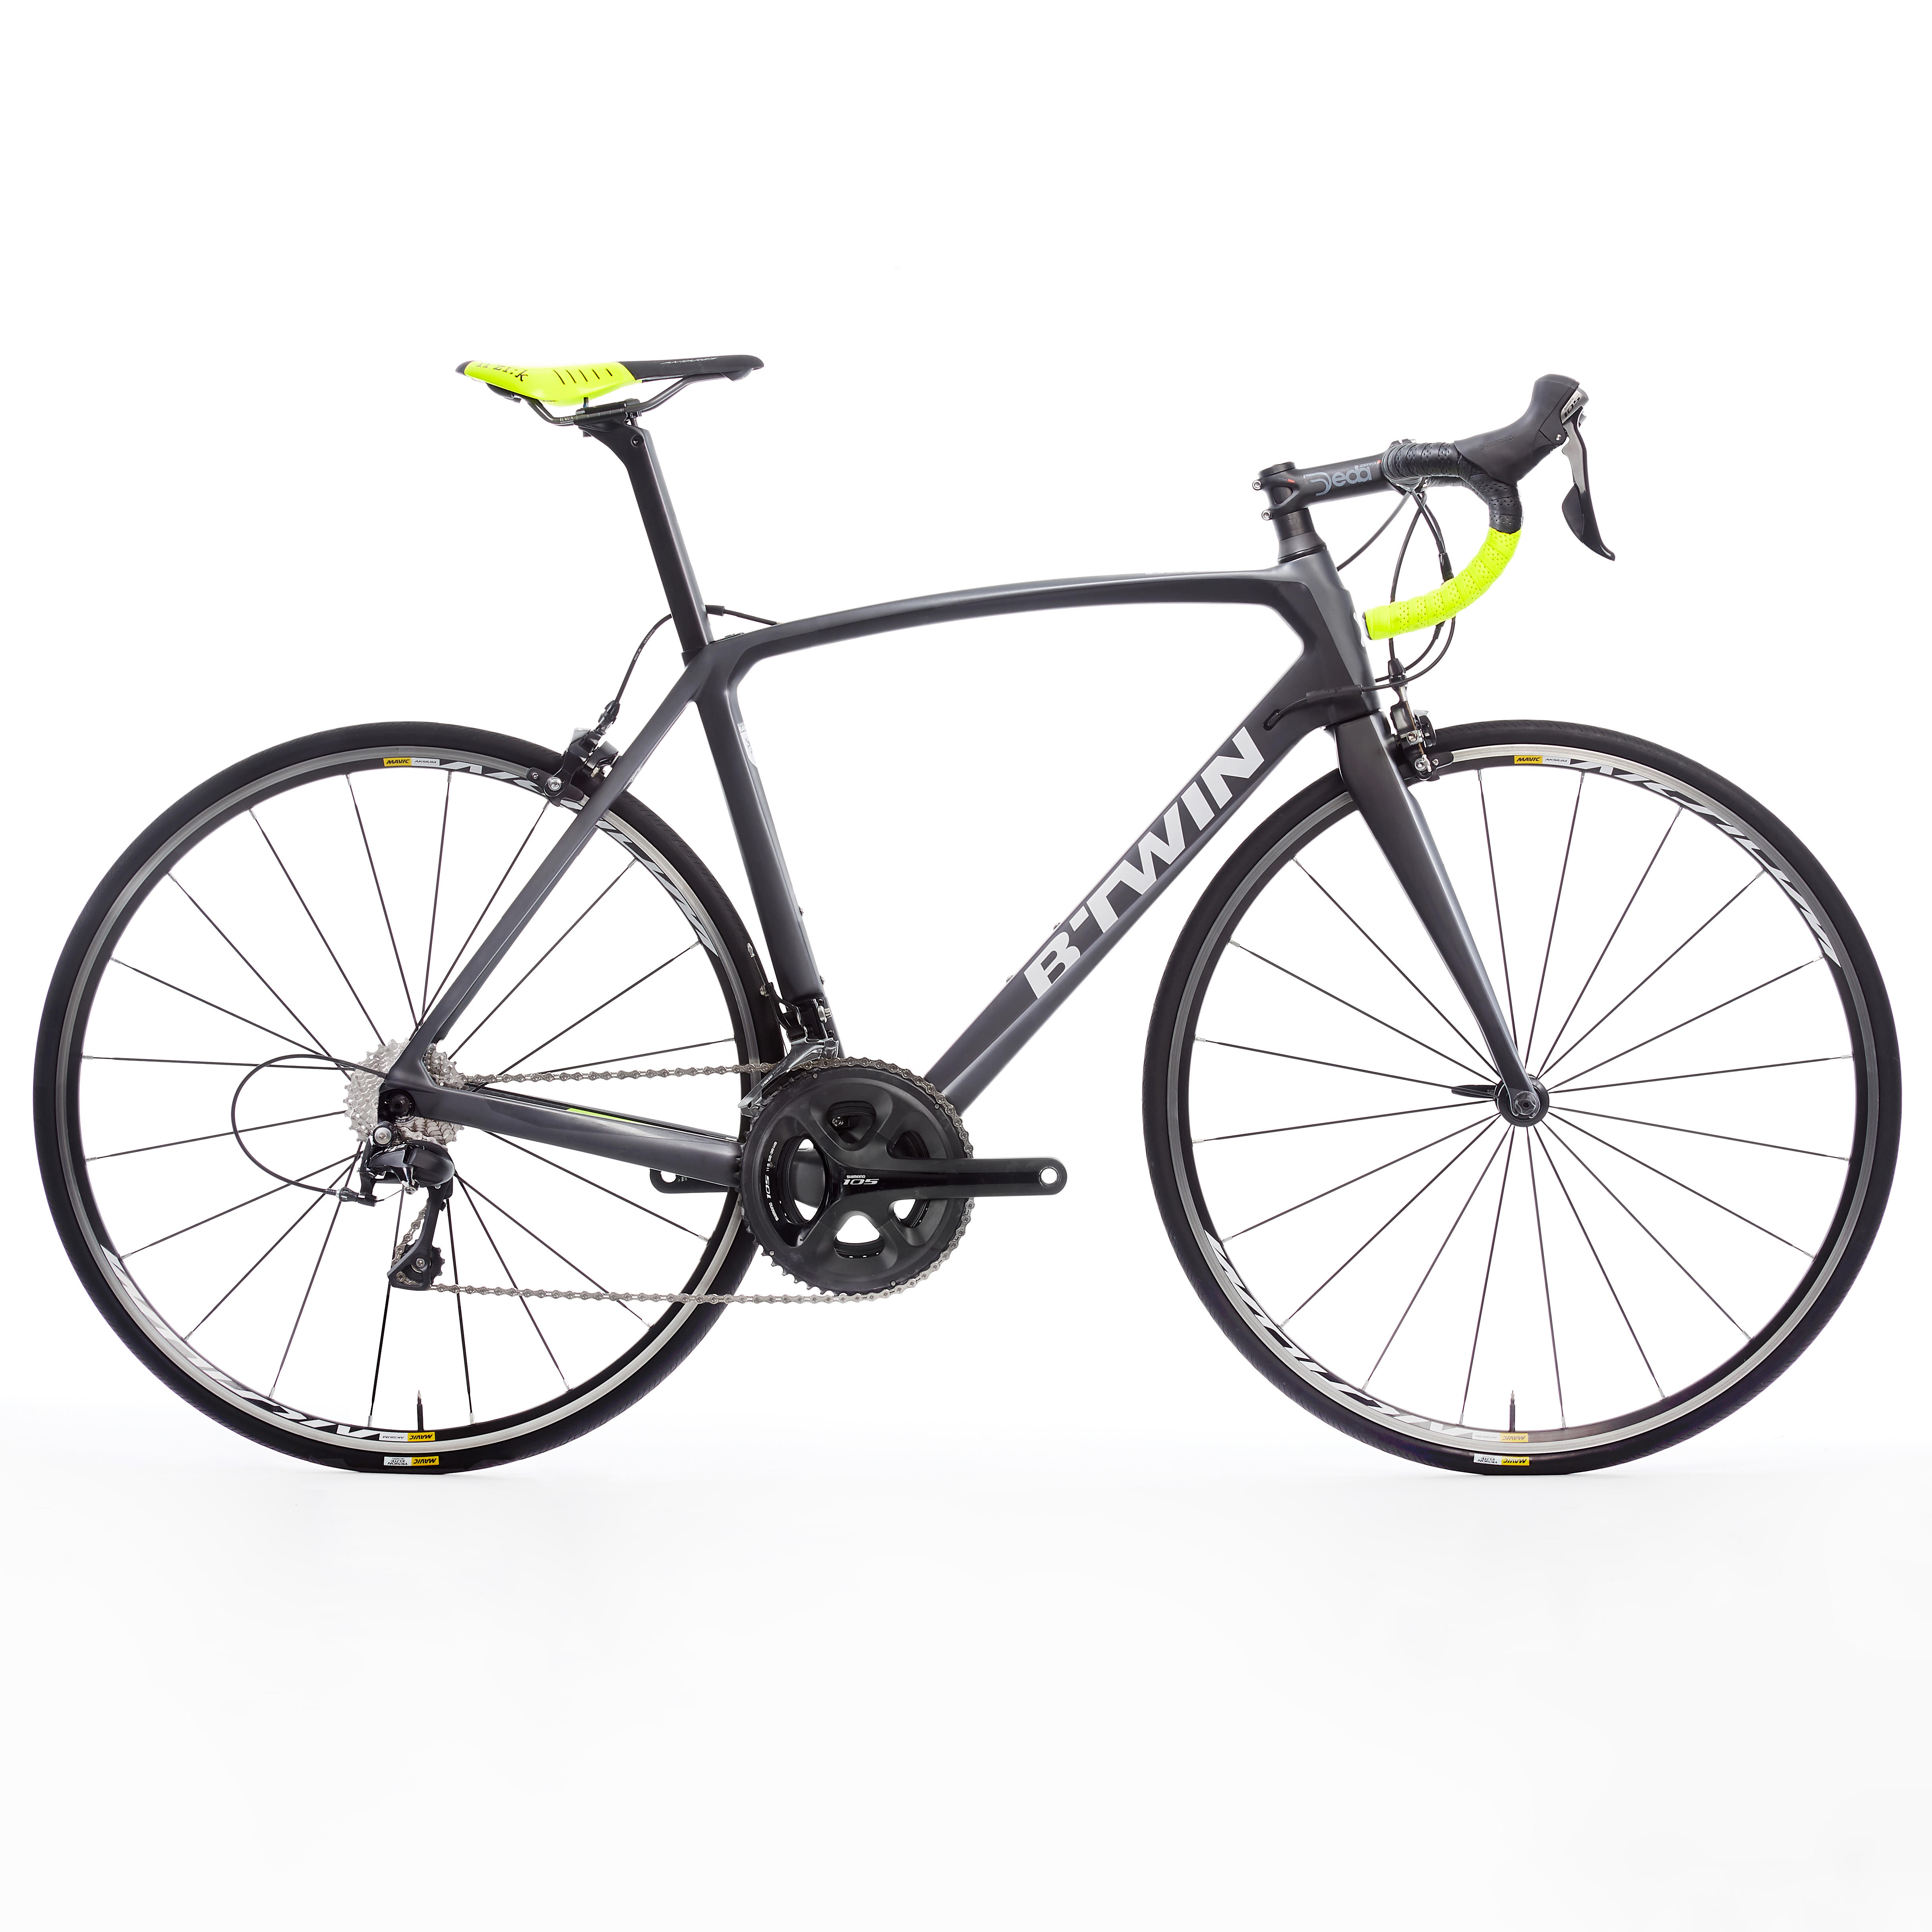 B'twin Racefiets Ultra 900 CF (Carbon Frame) - S